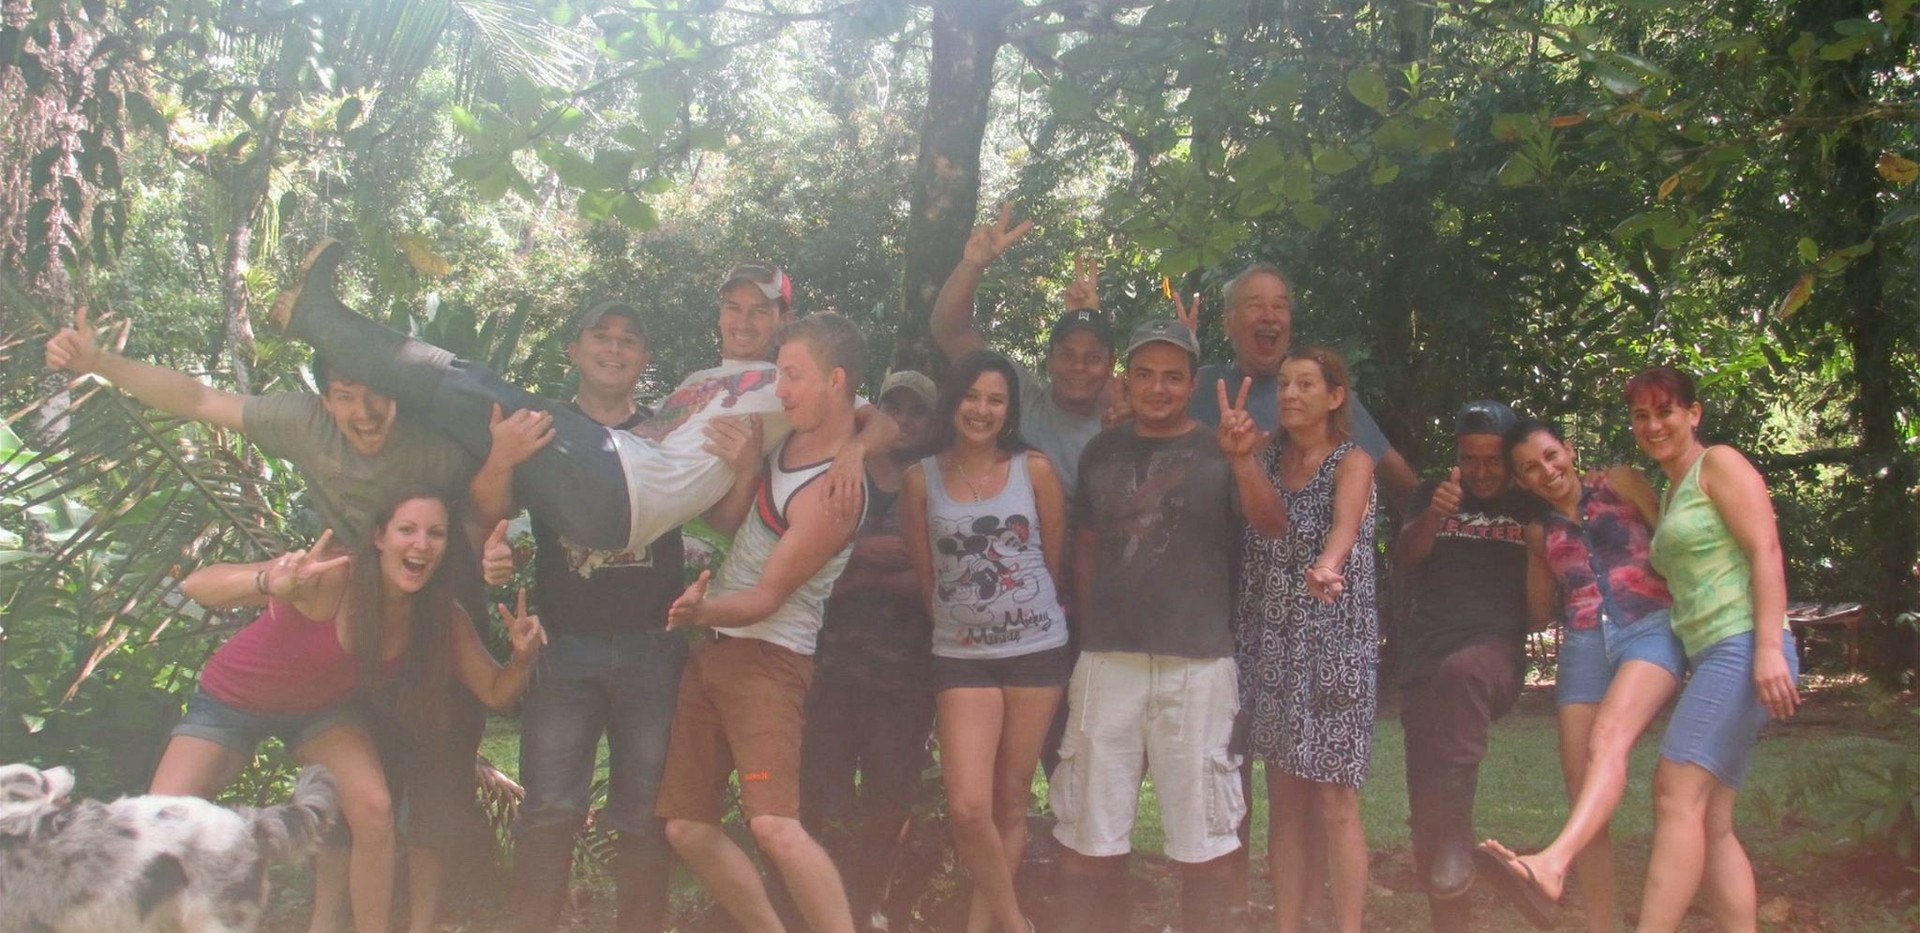 Amy and I hanging out with the FBV crew when we used to be managers